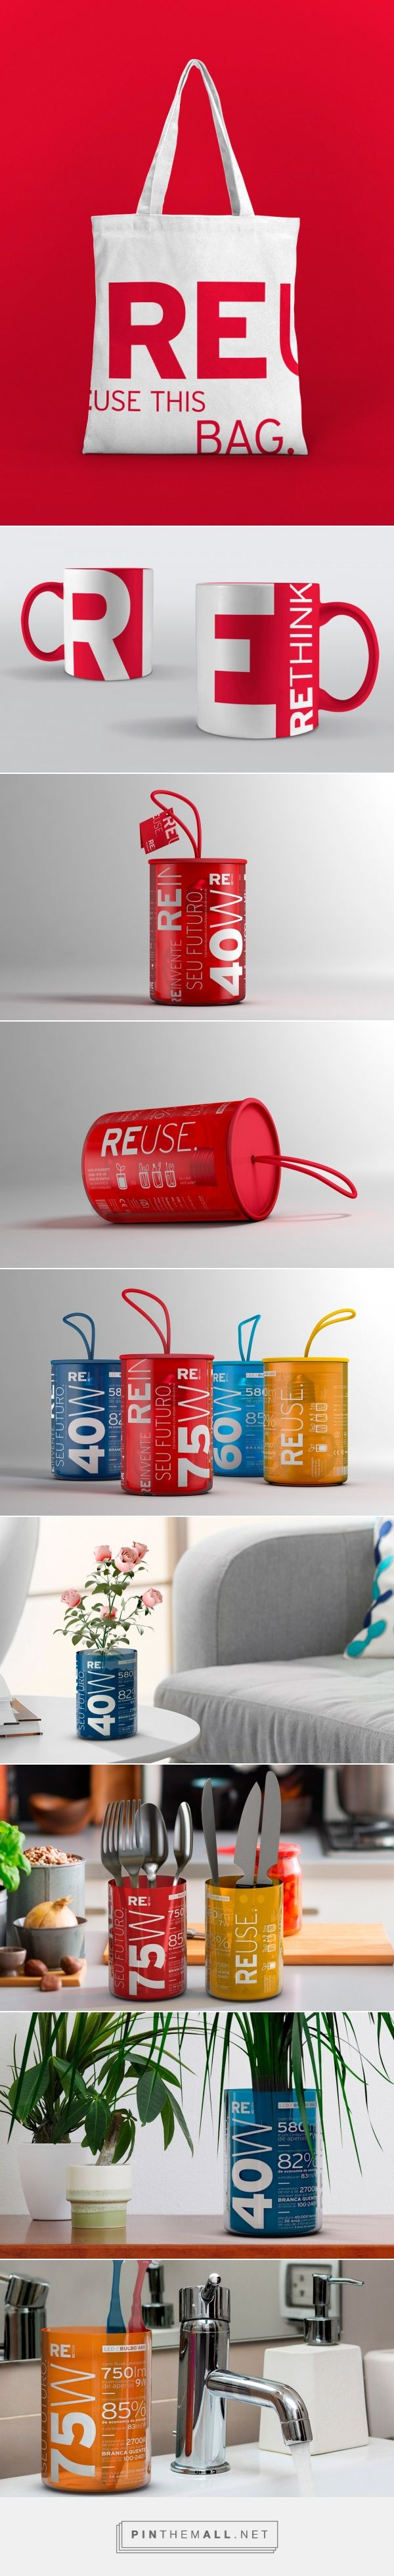 RE - Packaging of the World - Creative Package Design Gallery - http://www.packagingoftheworld.com/2016/10/re.html